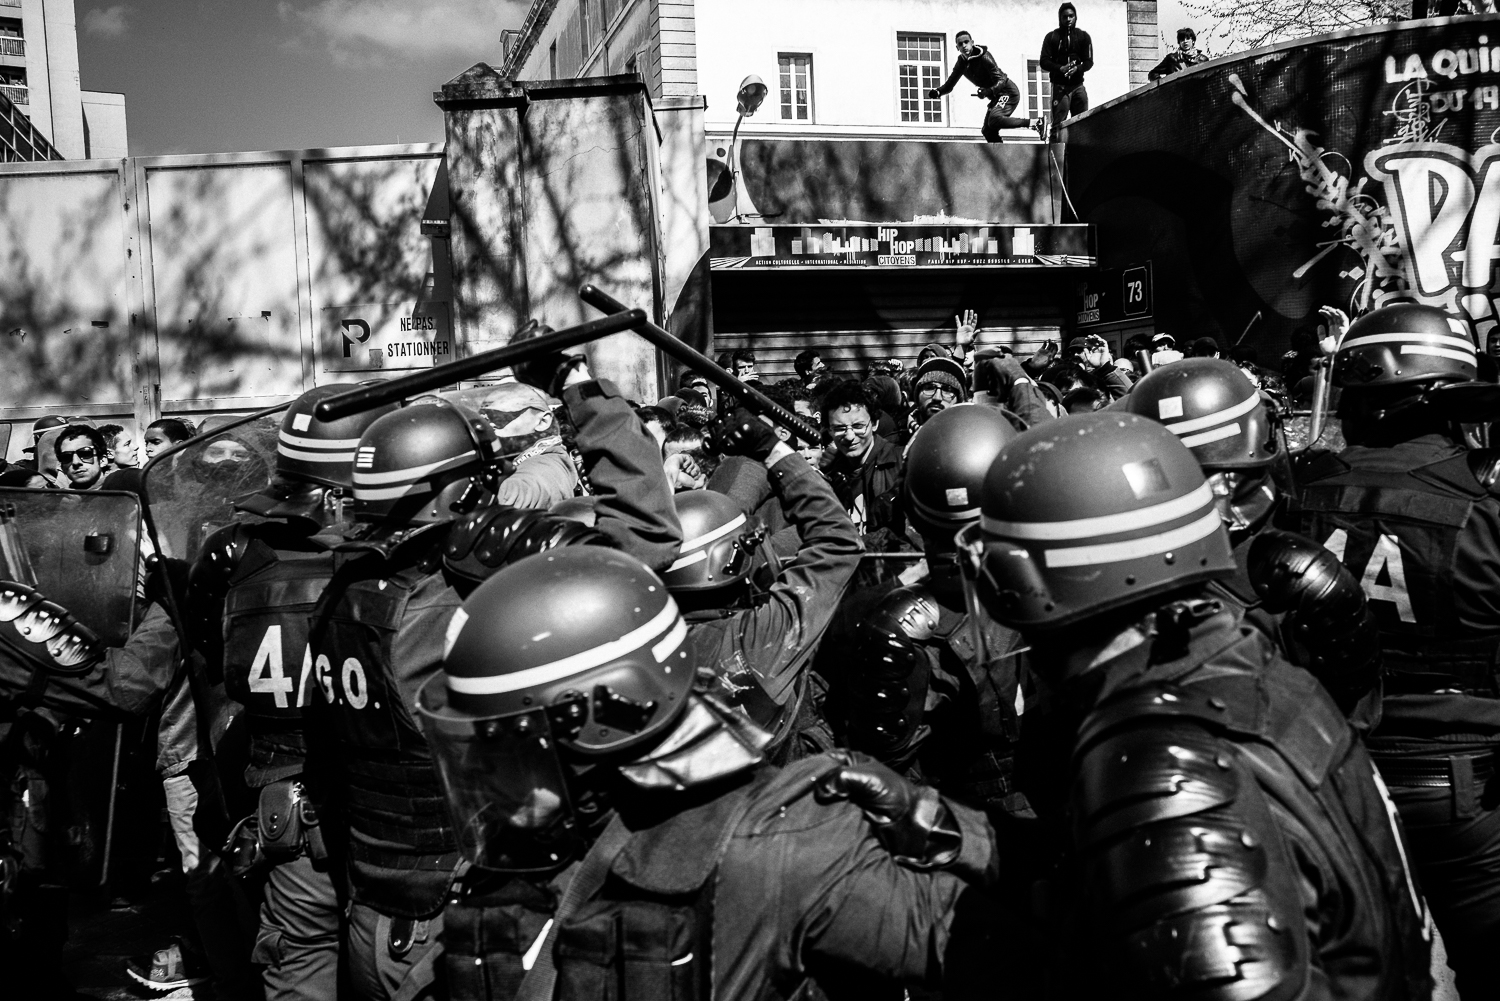 Riot police cordoned off a group of protestors against a wall. More than 100 were arrested on that day.5th April 2016.